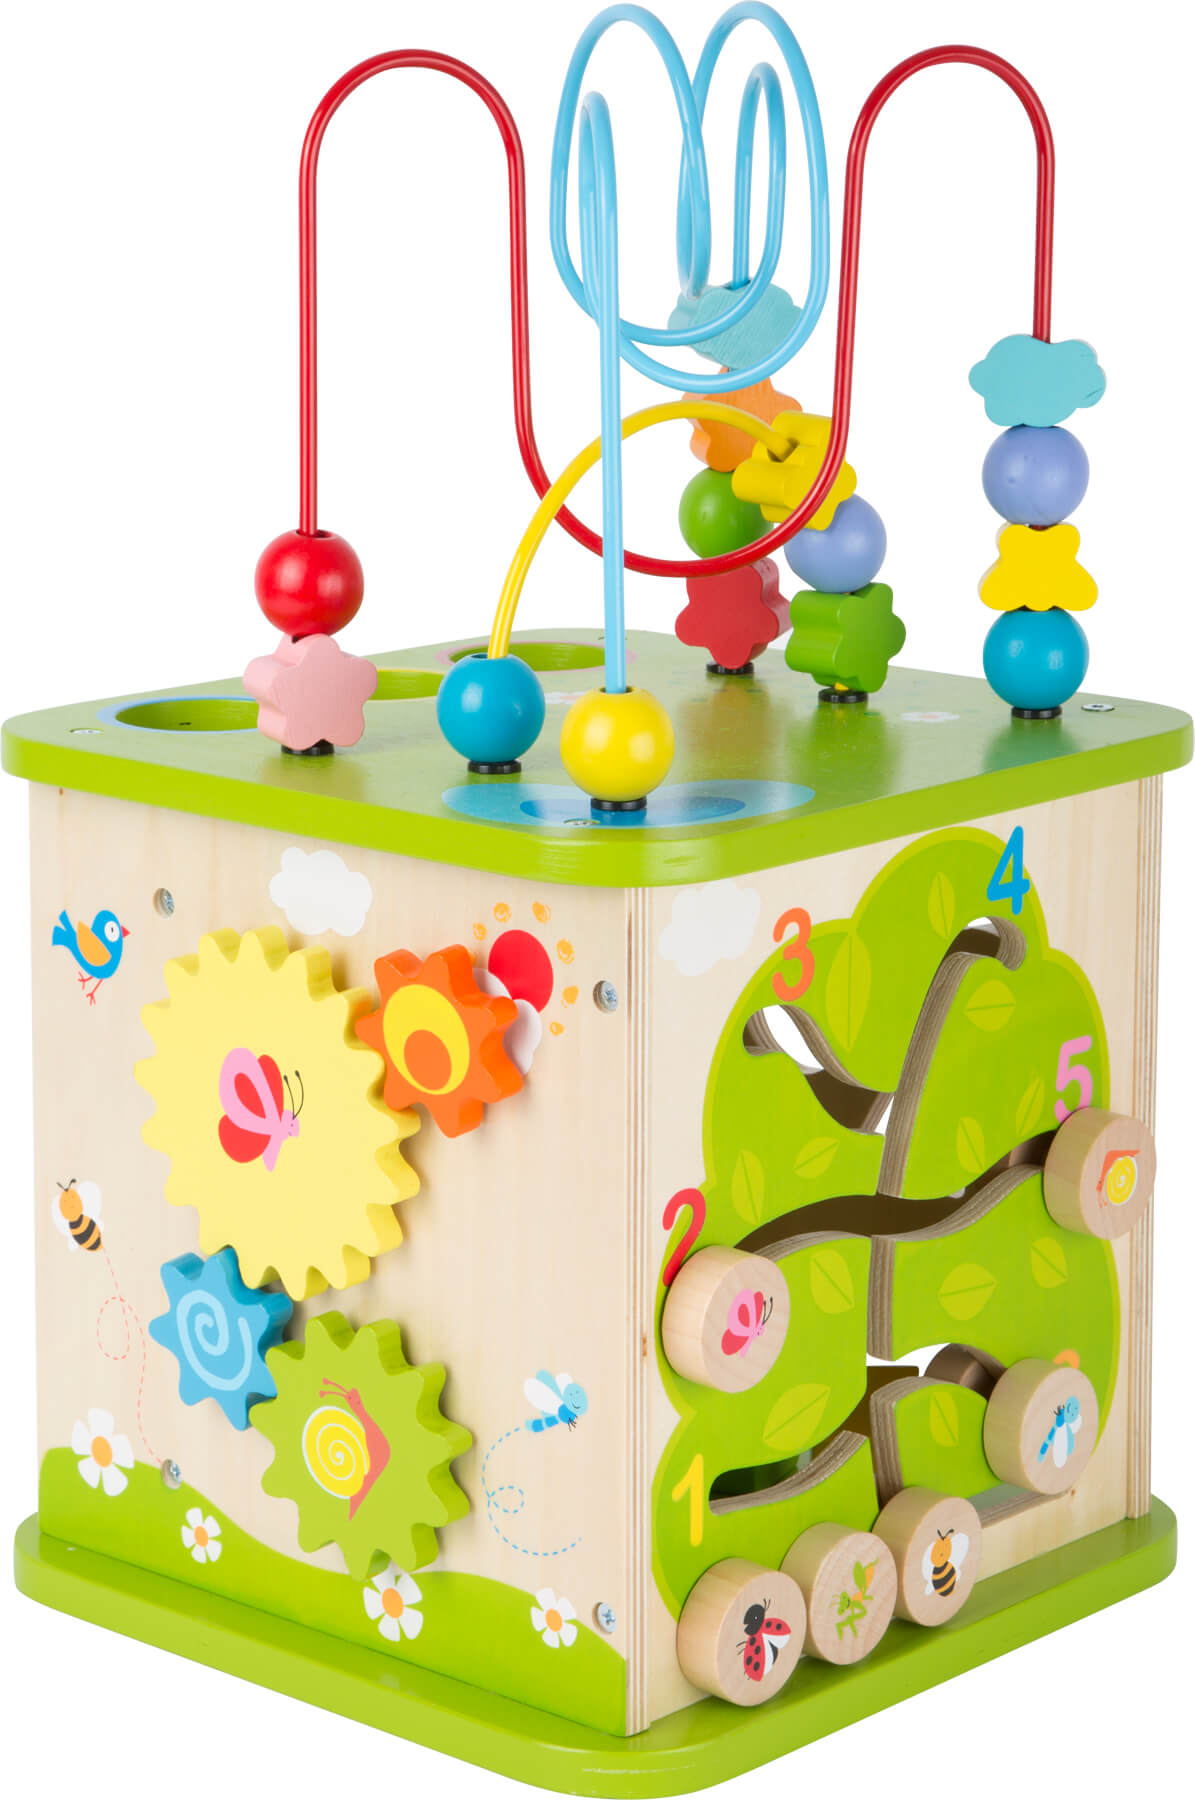 Motor Skills World with Marble Run